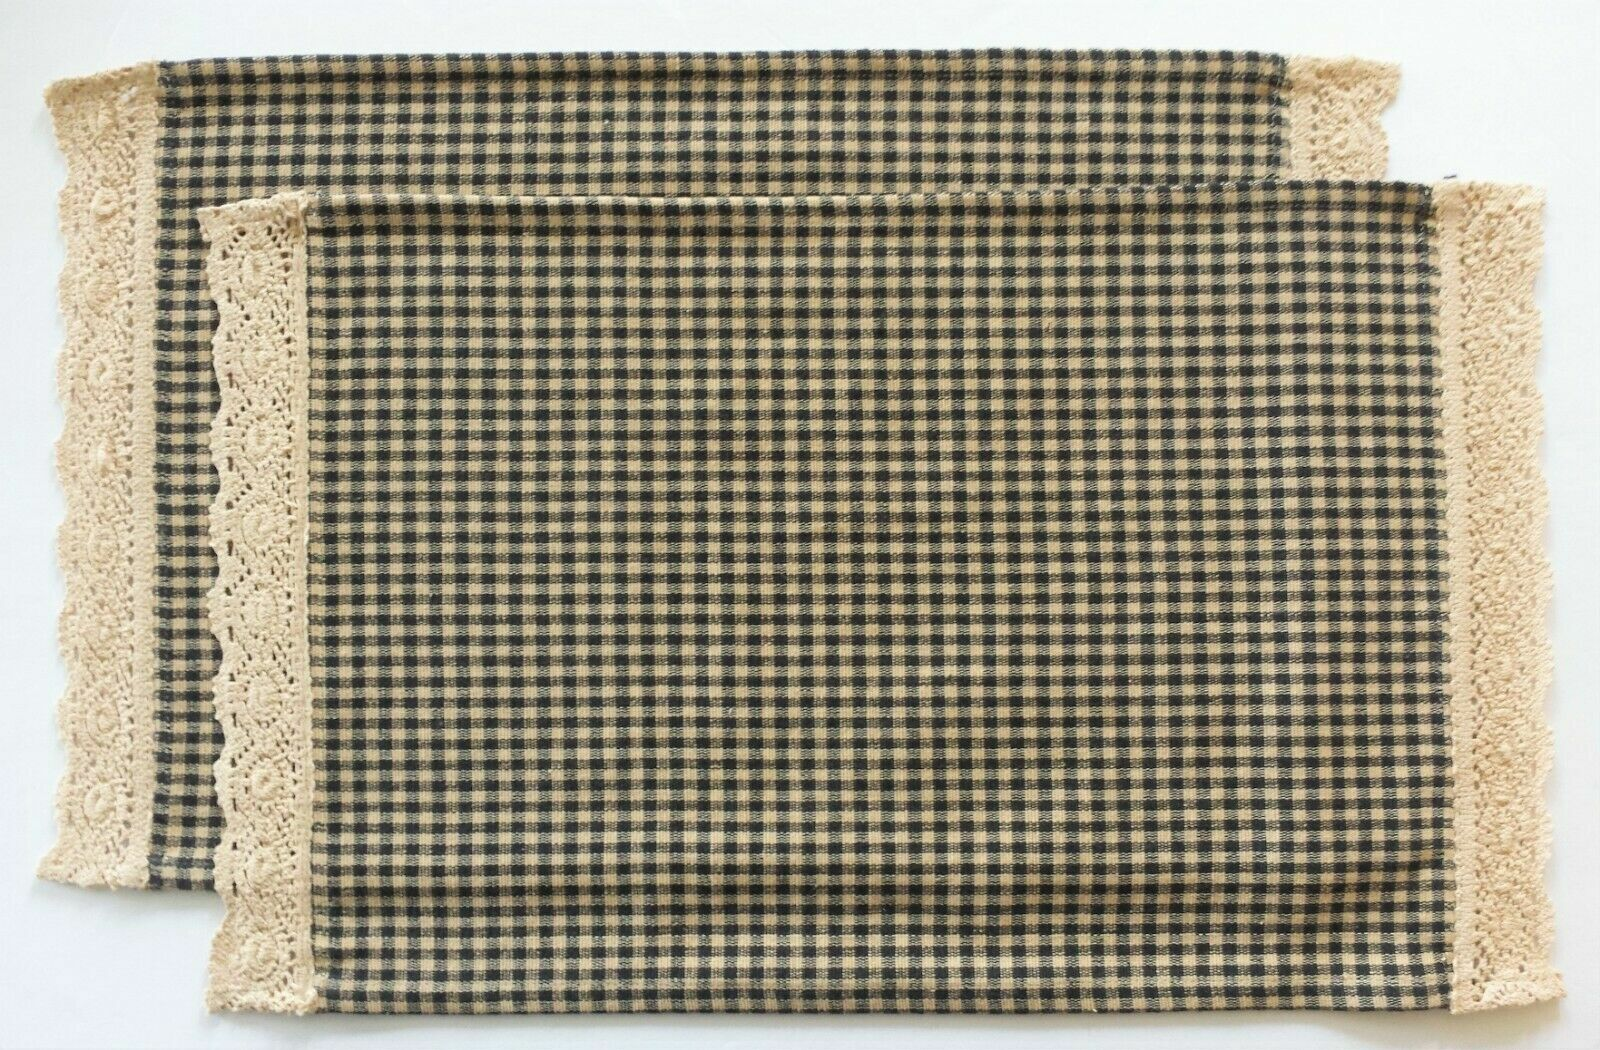 New Country Primitive BLACK /& TAN GINGHAM PLACE MAT Check Crocheted Lace Trim